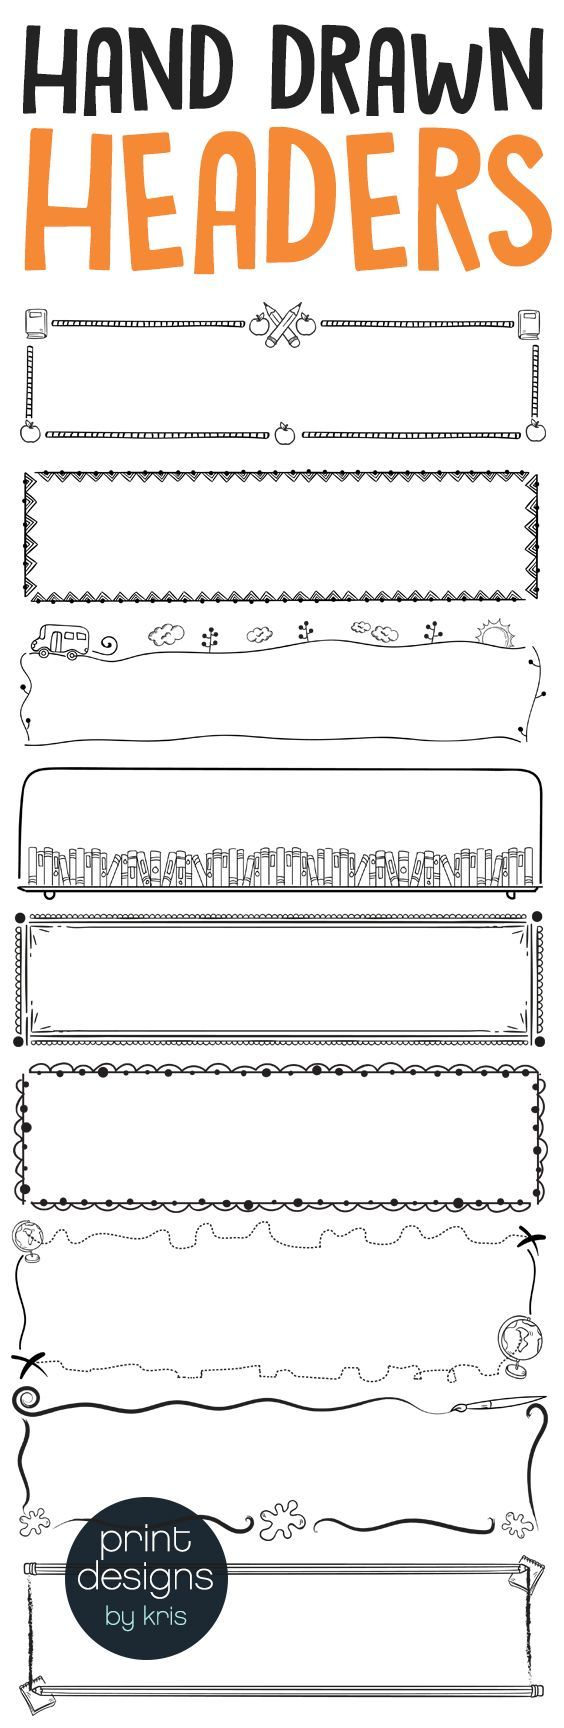 Hand drawn header boxes perfect for dressing up a worksheet [ 1728 x 564 Pixel ]